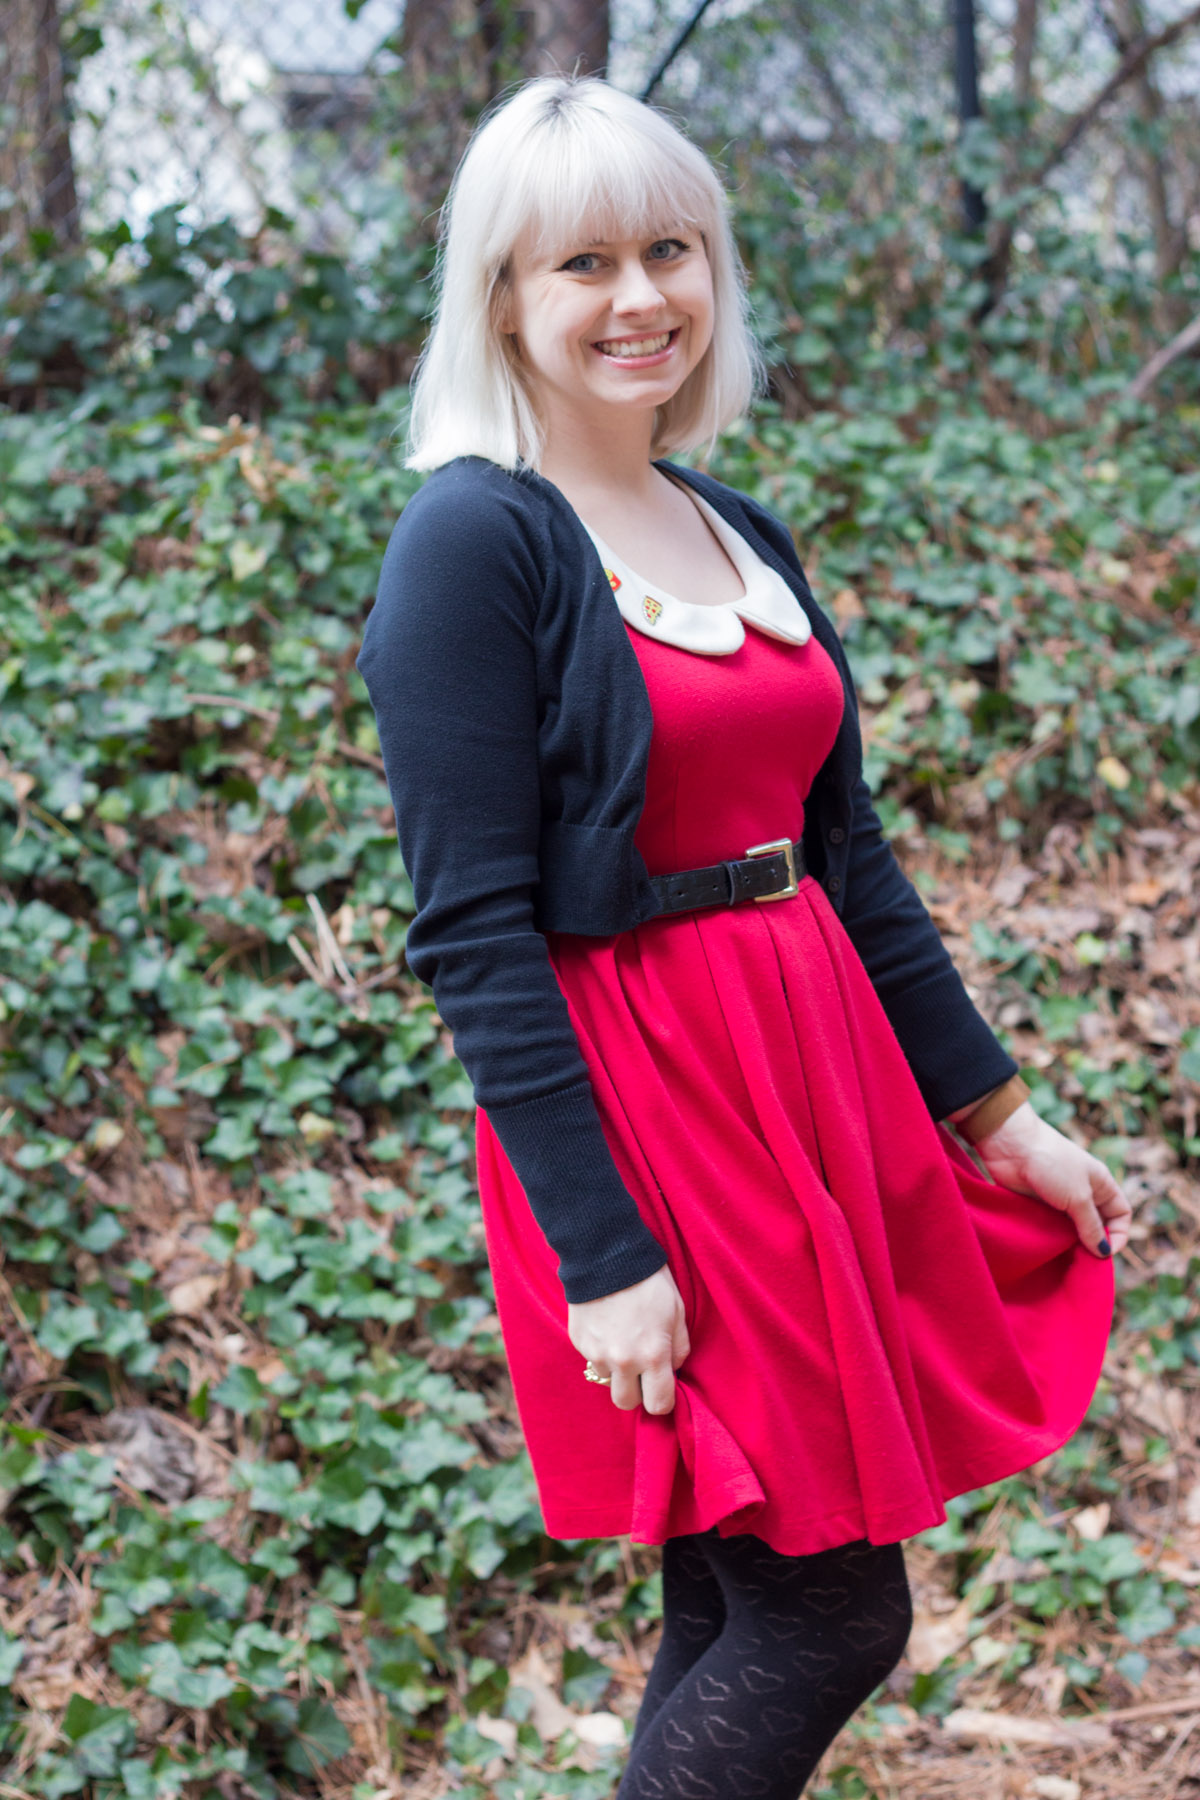 Red Modcloth Dress, Black Cropped Cardigan, and Platinum Blonde Hair